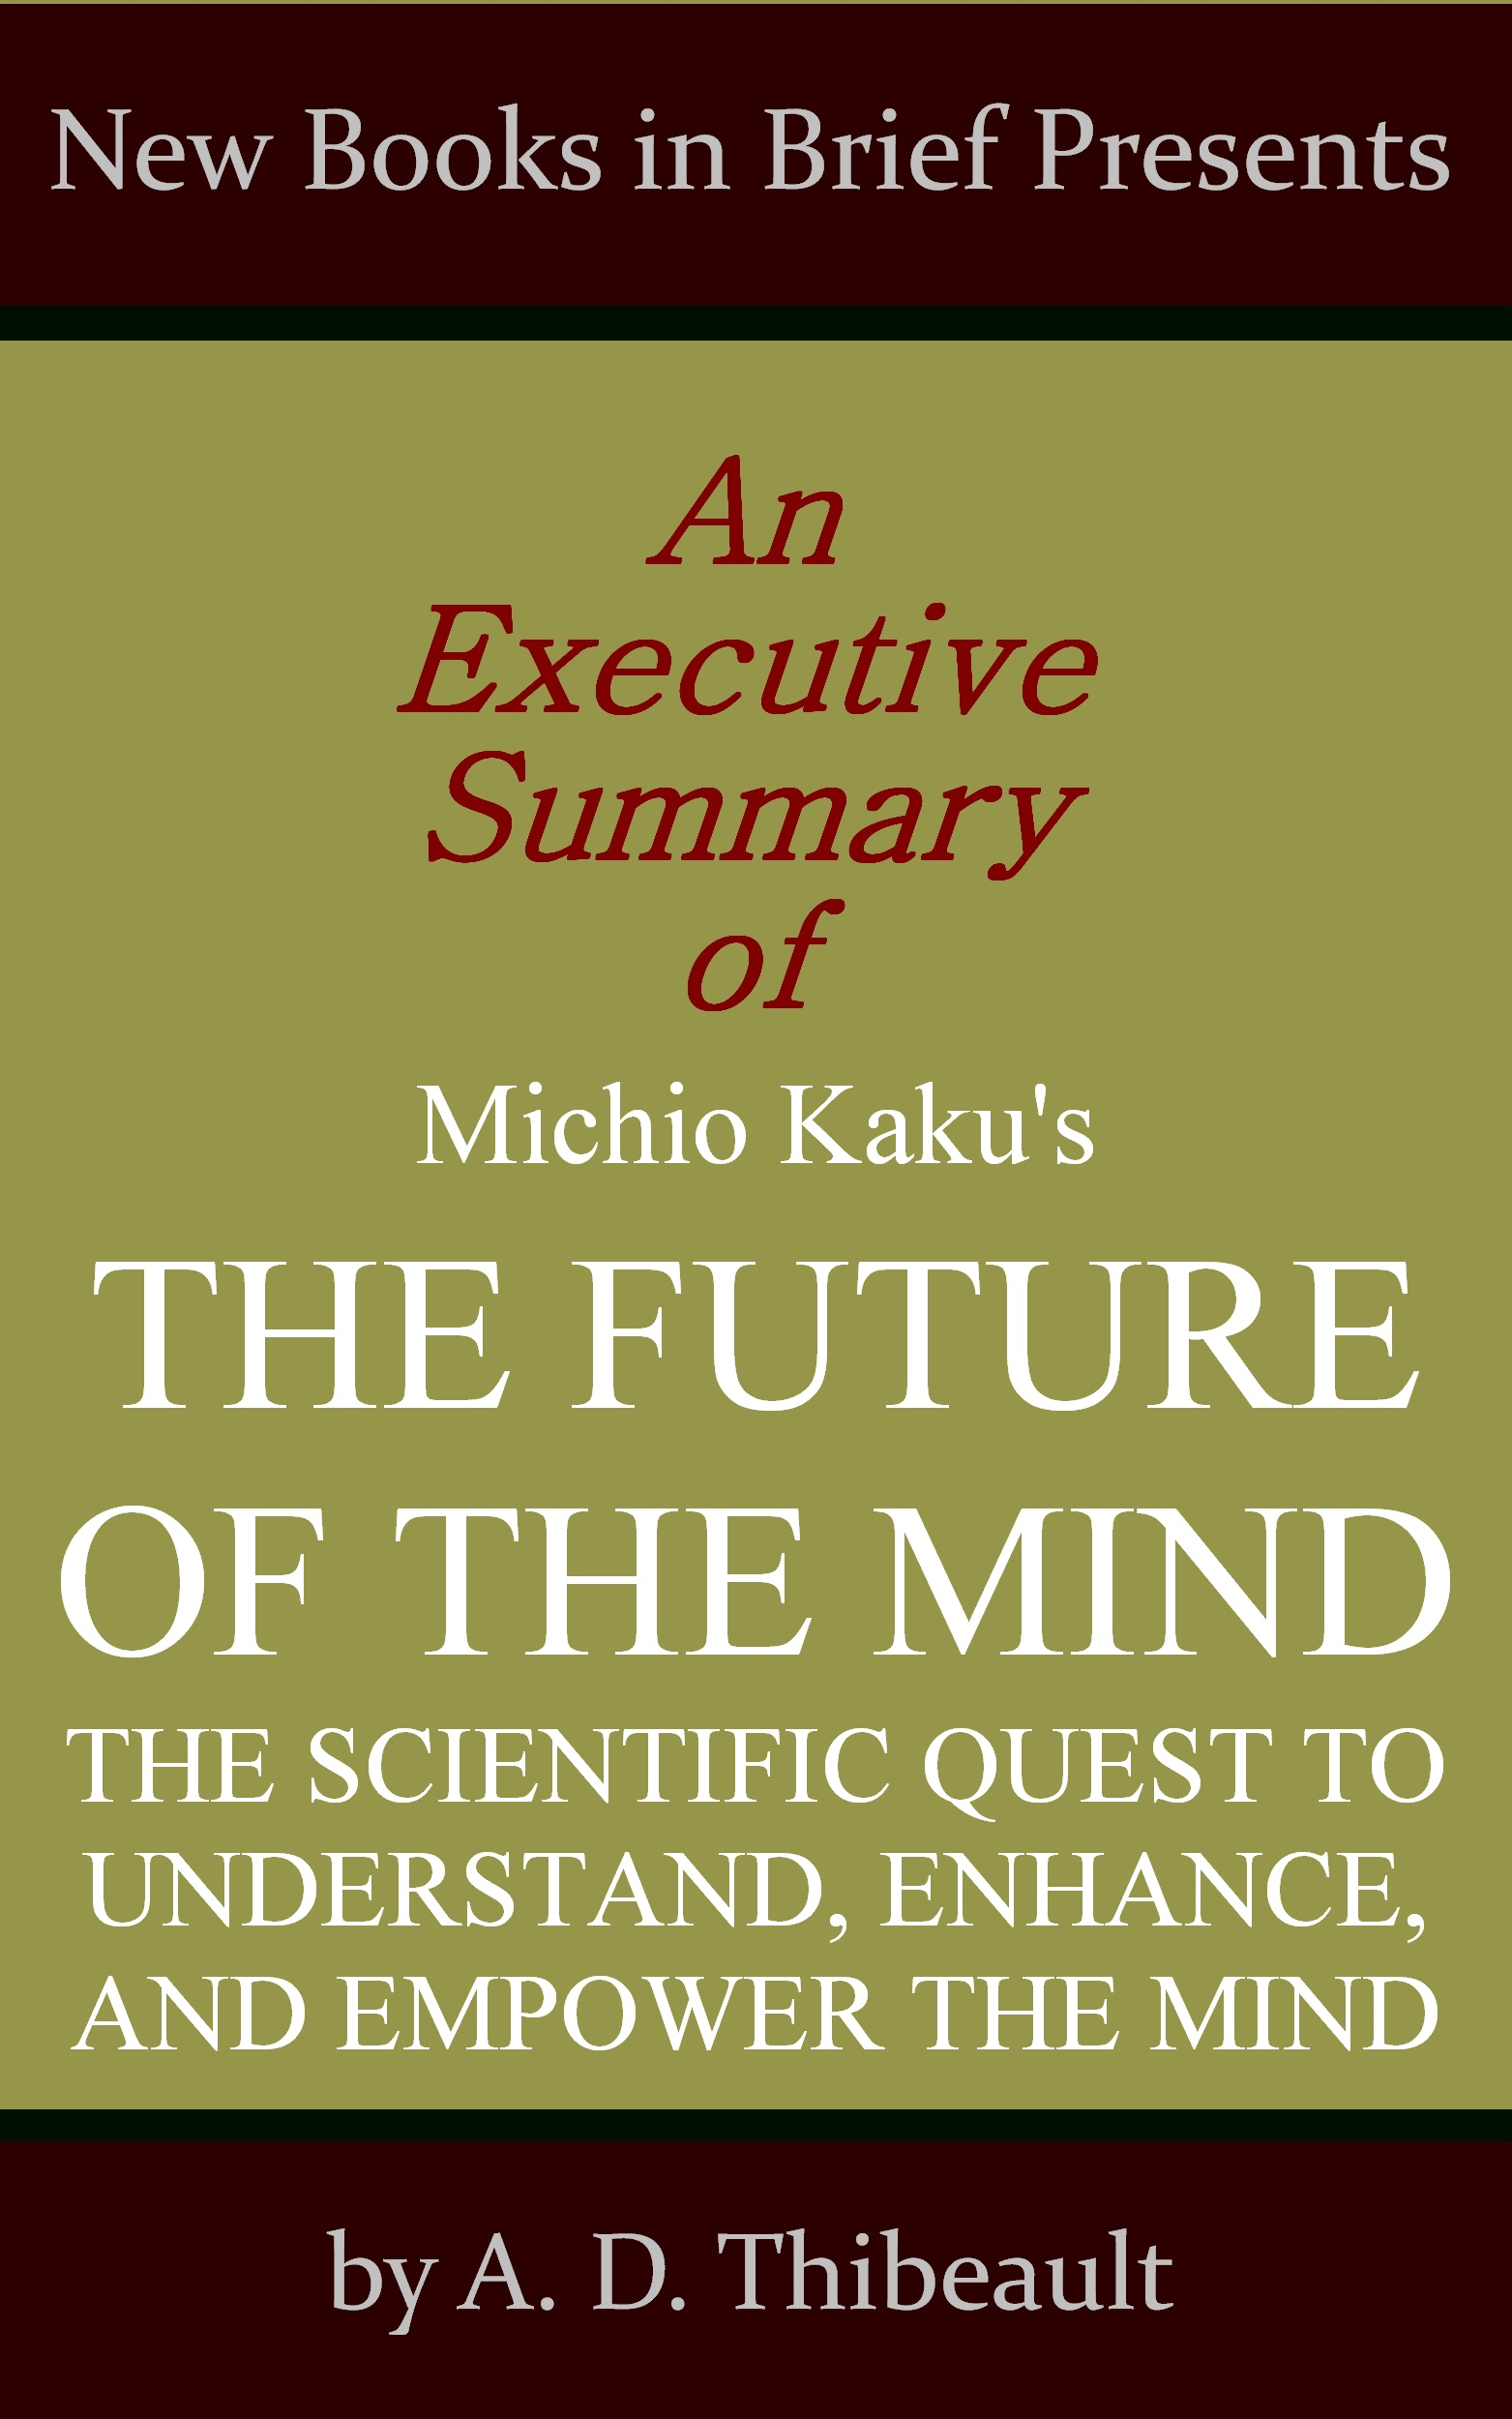 A. D. Thibeault - An Executive Summary of Michio Kaku's 'The Future of the Mind: The Scientific Quest to Understand, Enhance, and Empower the Mind'